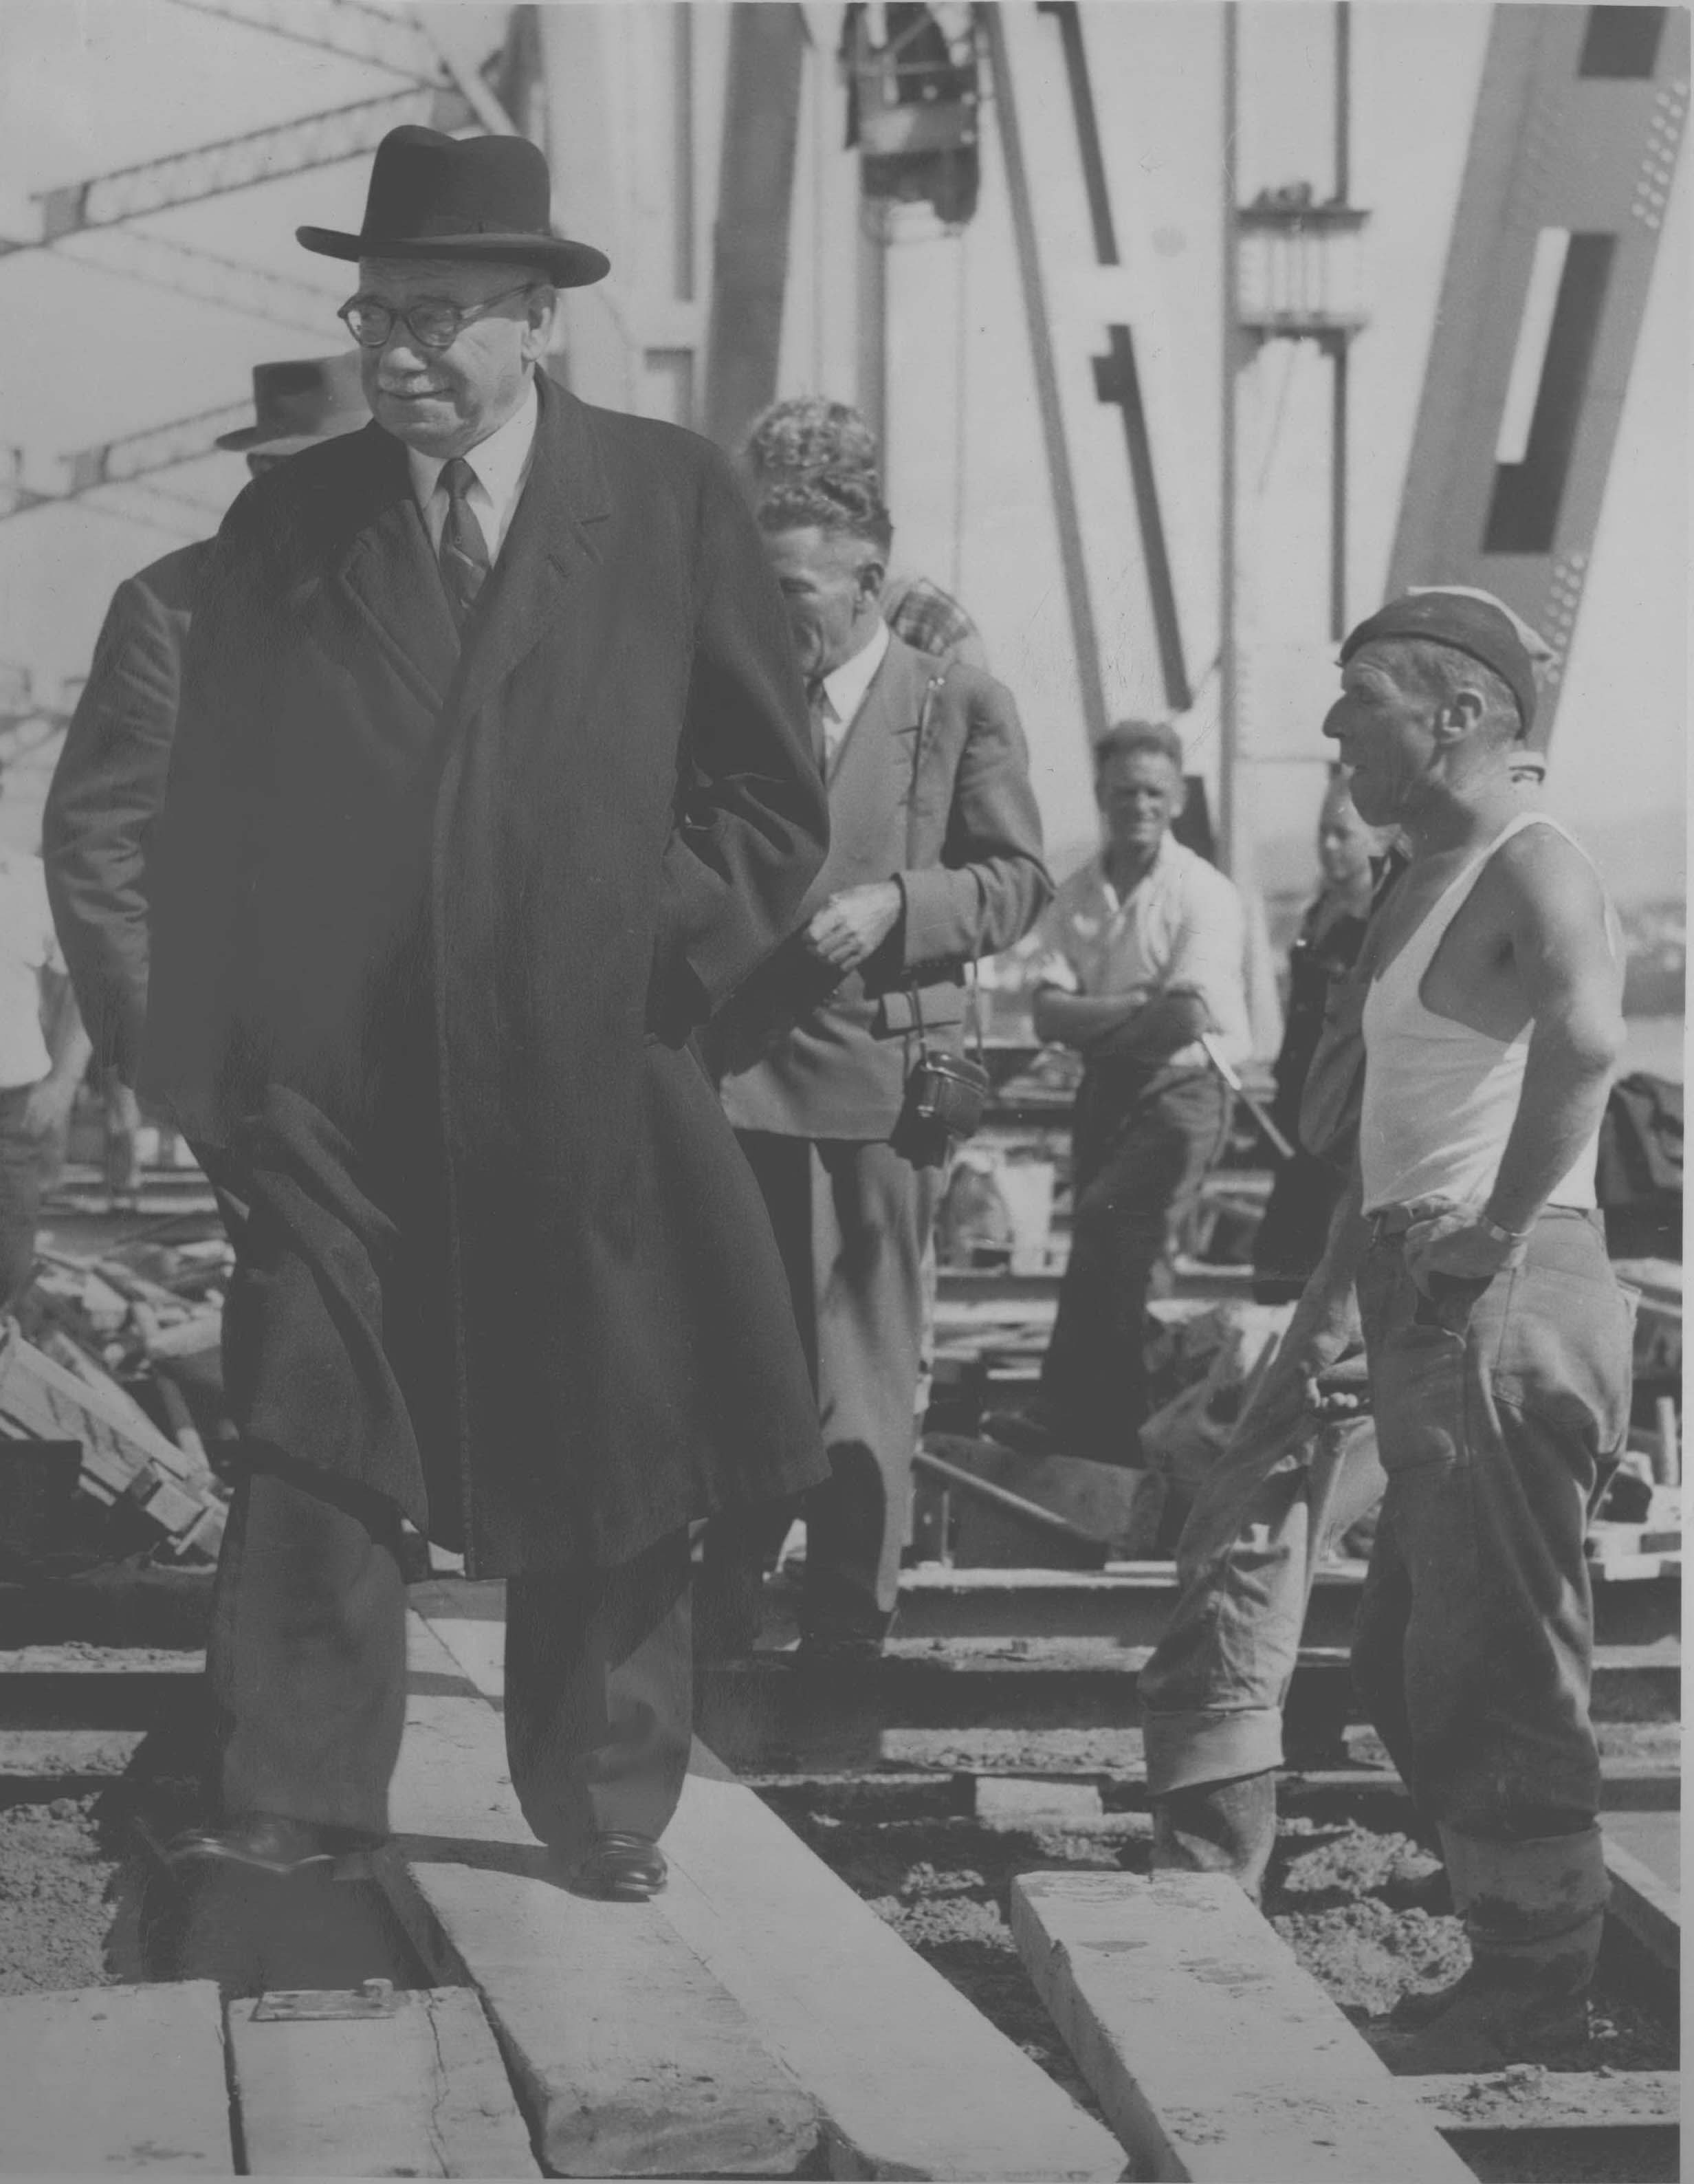 Sir John Allum crossing the complete Auckland Harbour Bridge with workers in the background